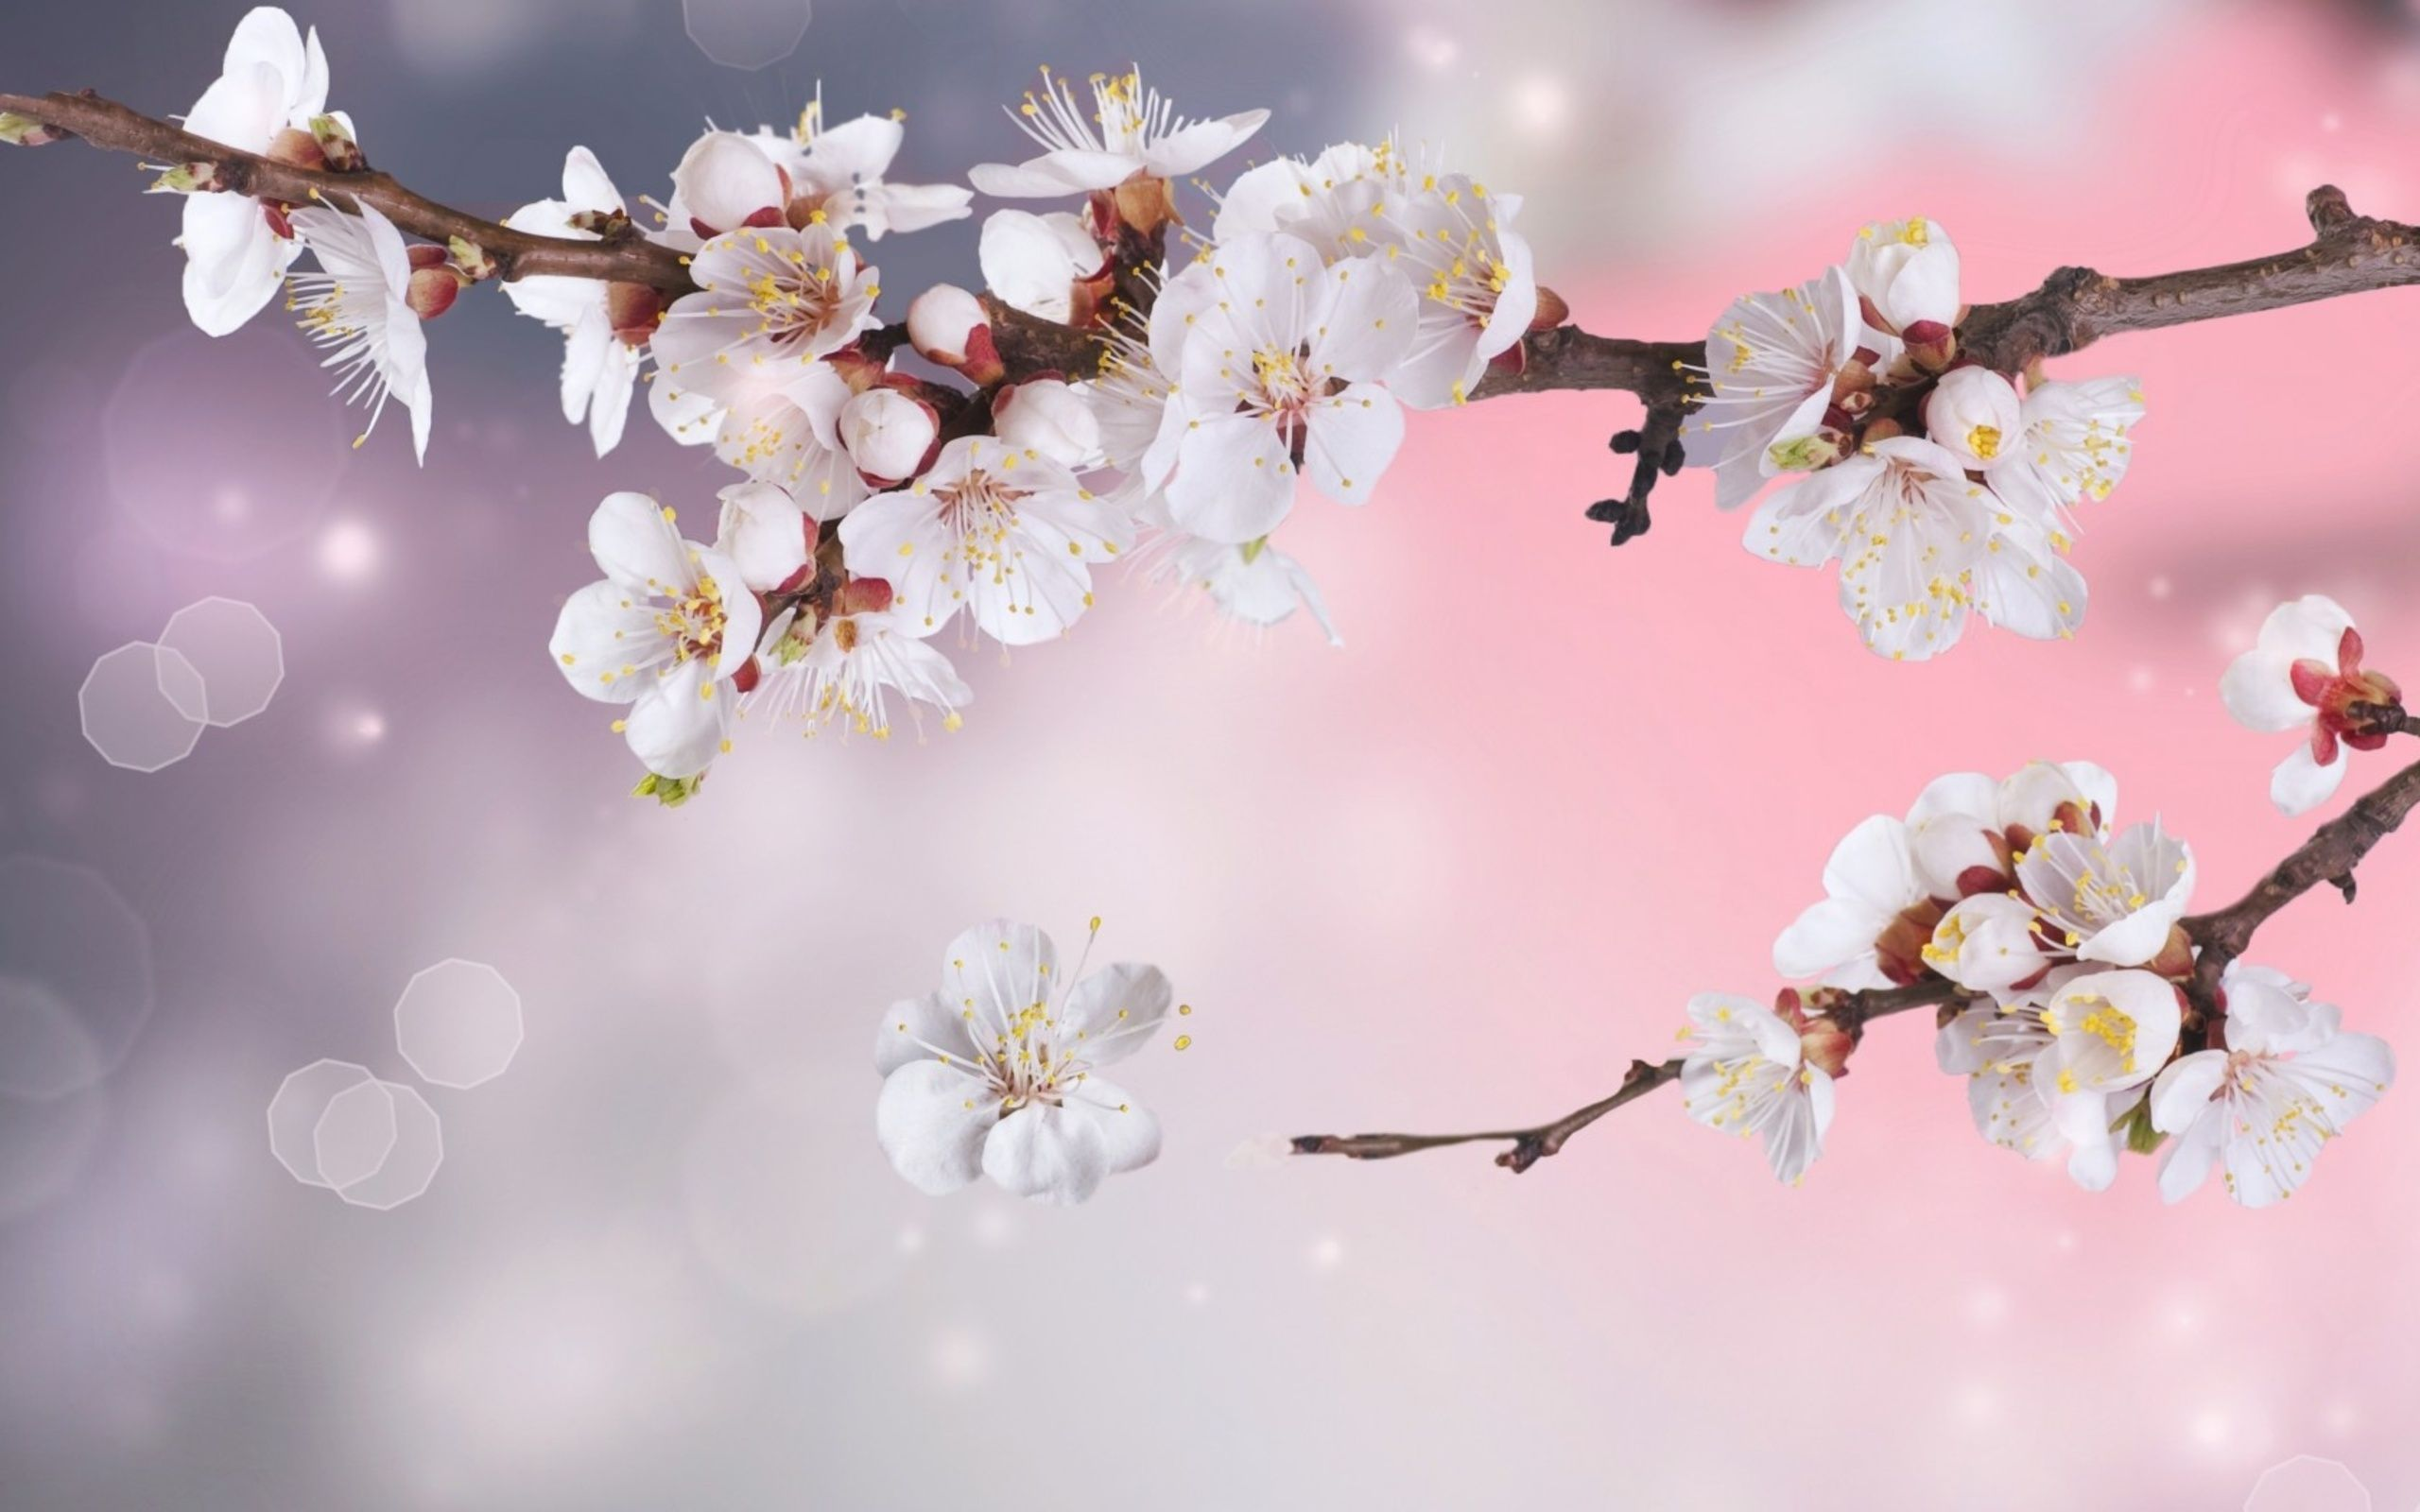 Flowers Wallpaper White Cherry Blossoms Wallpaper Desktop